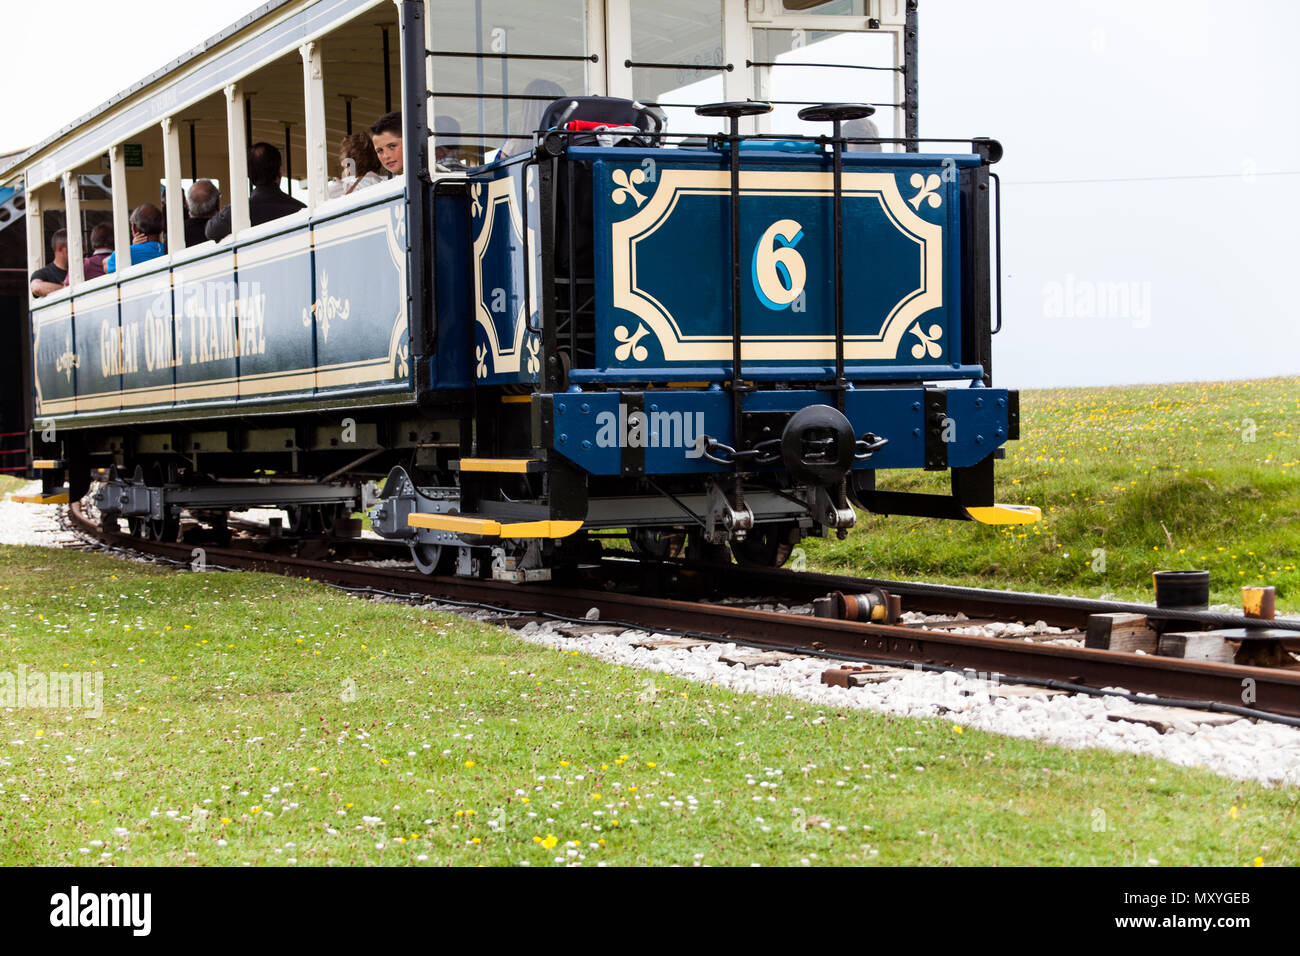 A fascinating journey on the vintage blue funicular tramway. nature sightseeing during the trip on tram. The spectacular ride to the station on the ca - Stock Image